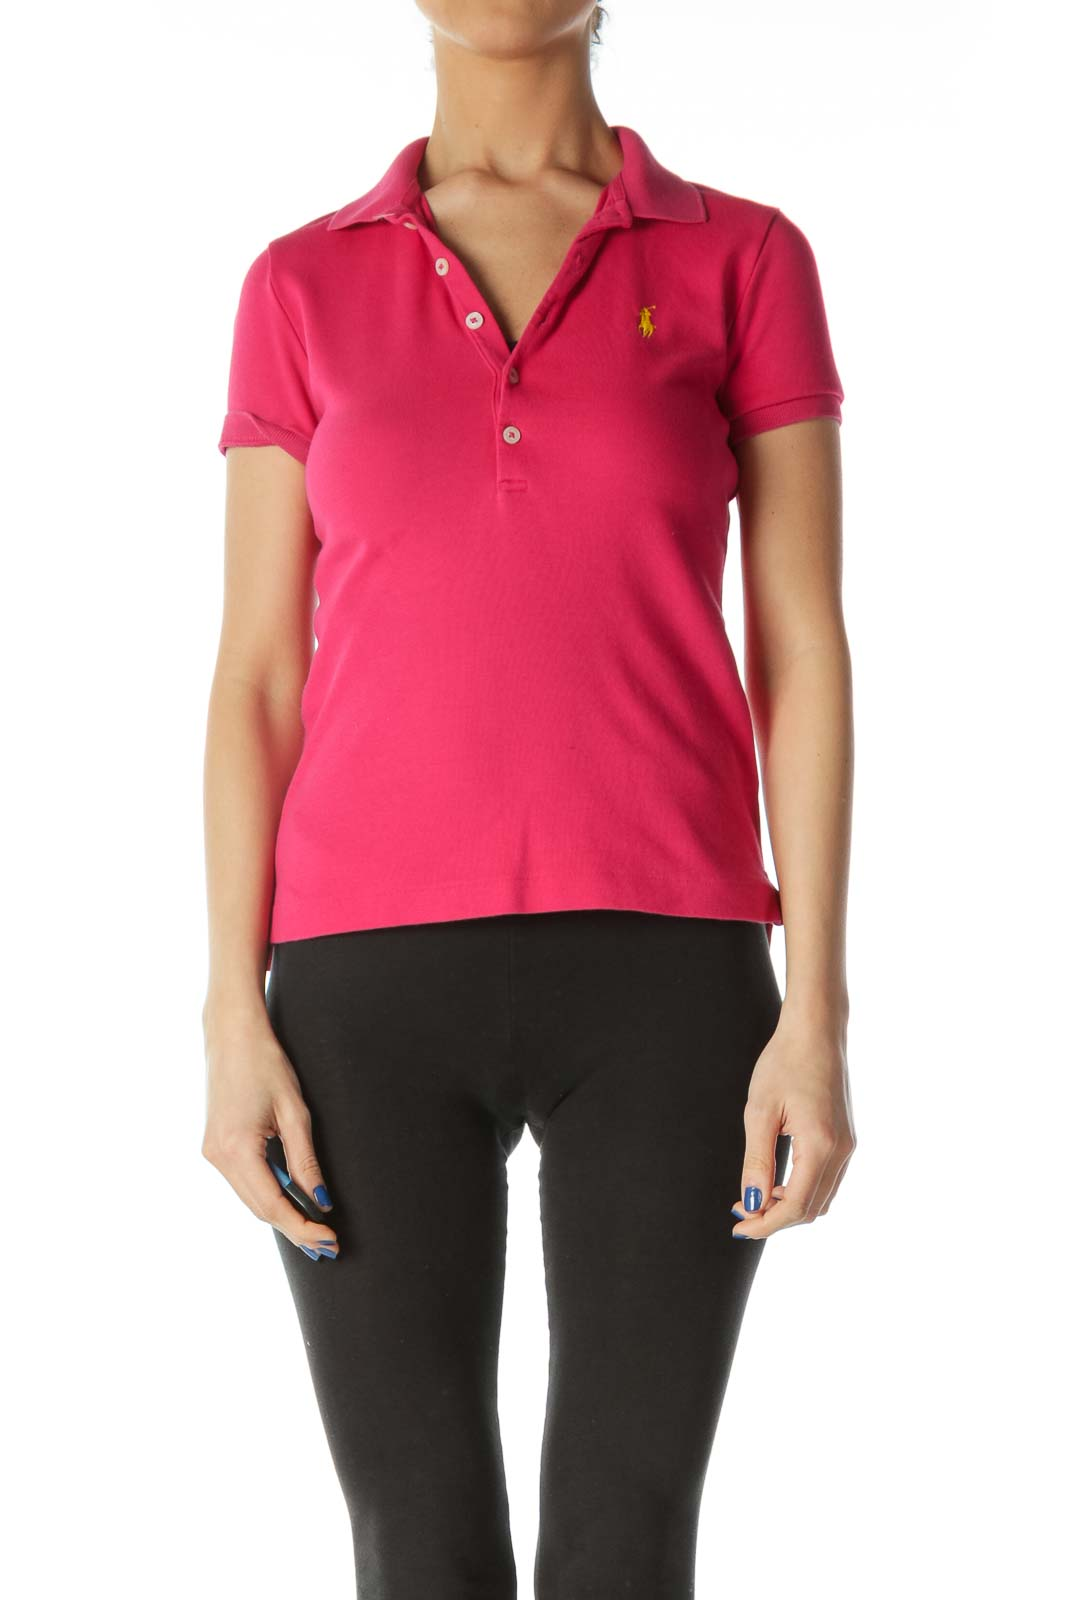 Hot Pink Polo Shirt